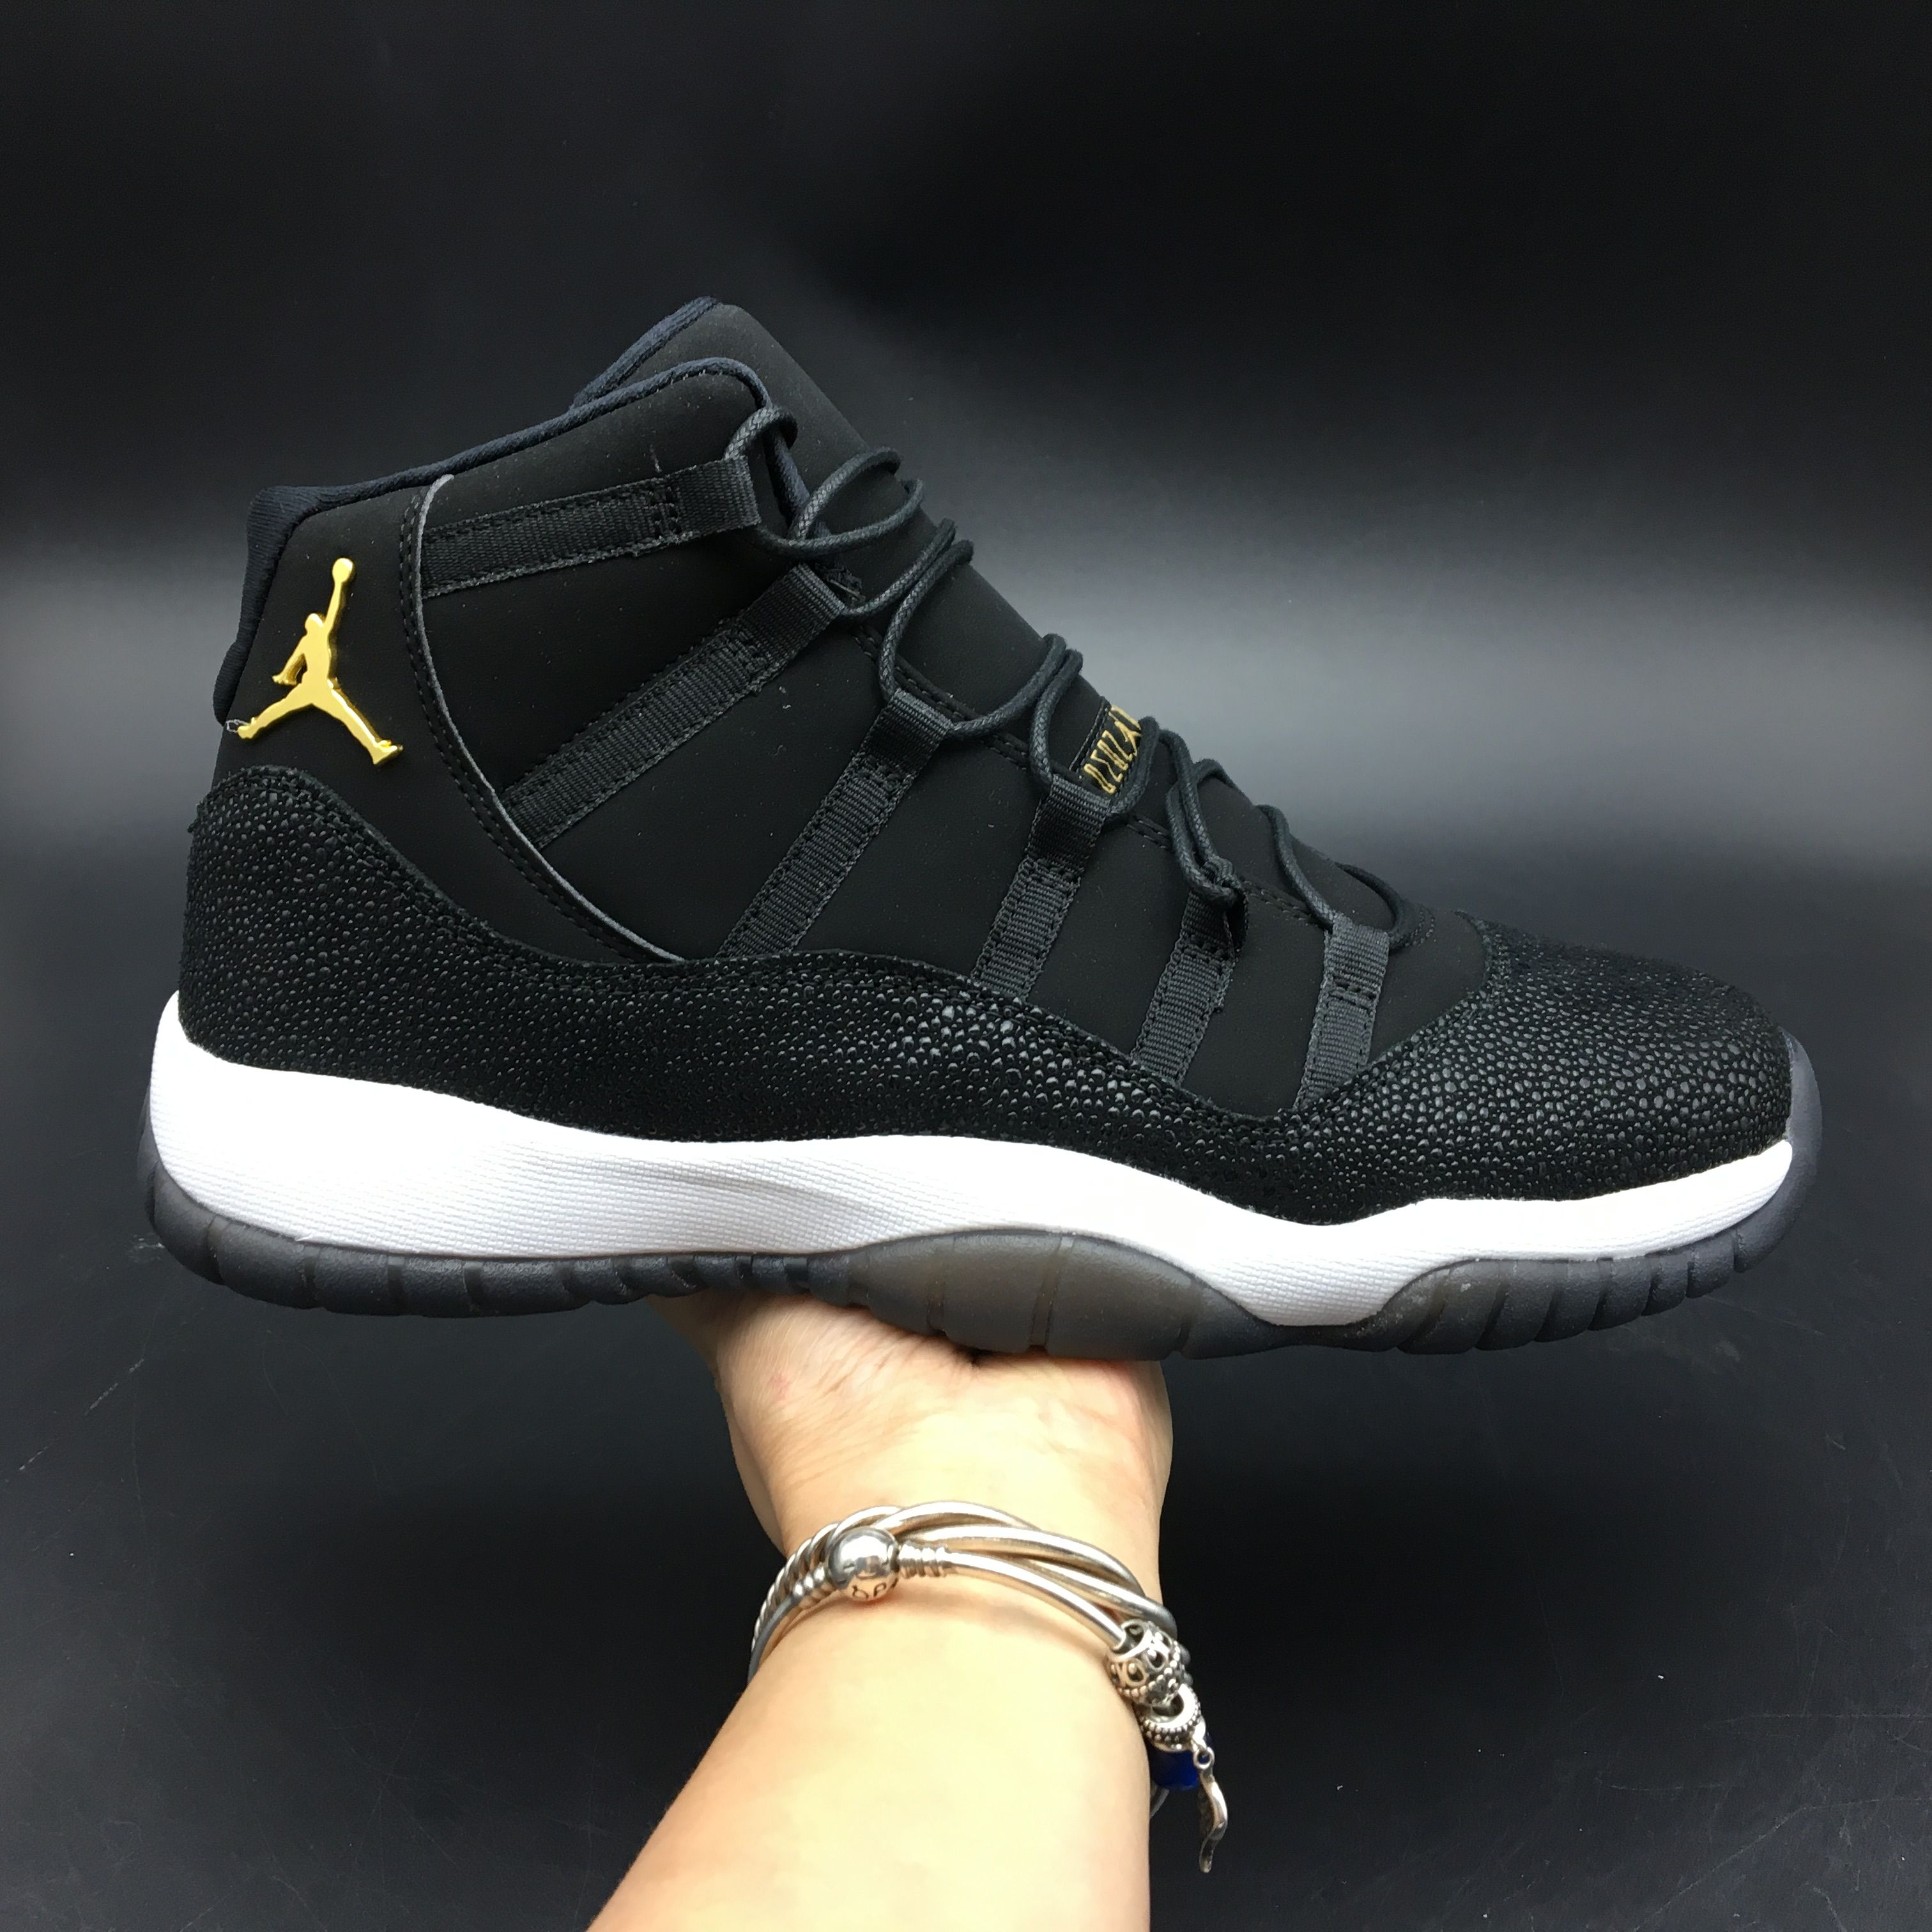 d511724589146e KicksOkok to provide you with the Air Jordan 11 PRM Heiress Black Stingray  real shot pictures. Thanks for visiting my online store  Kicksokok.com